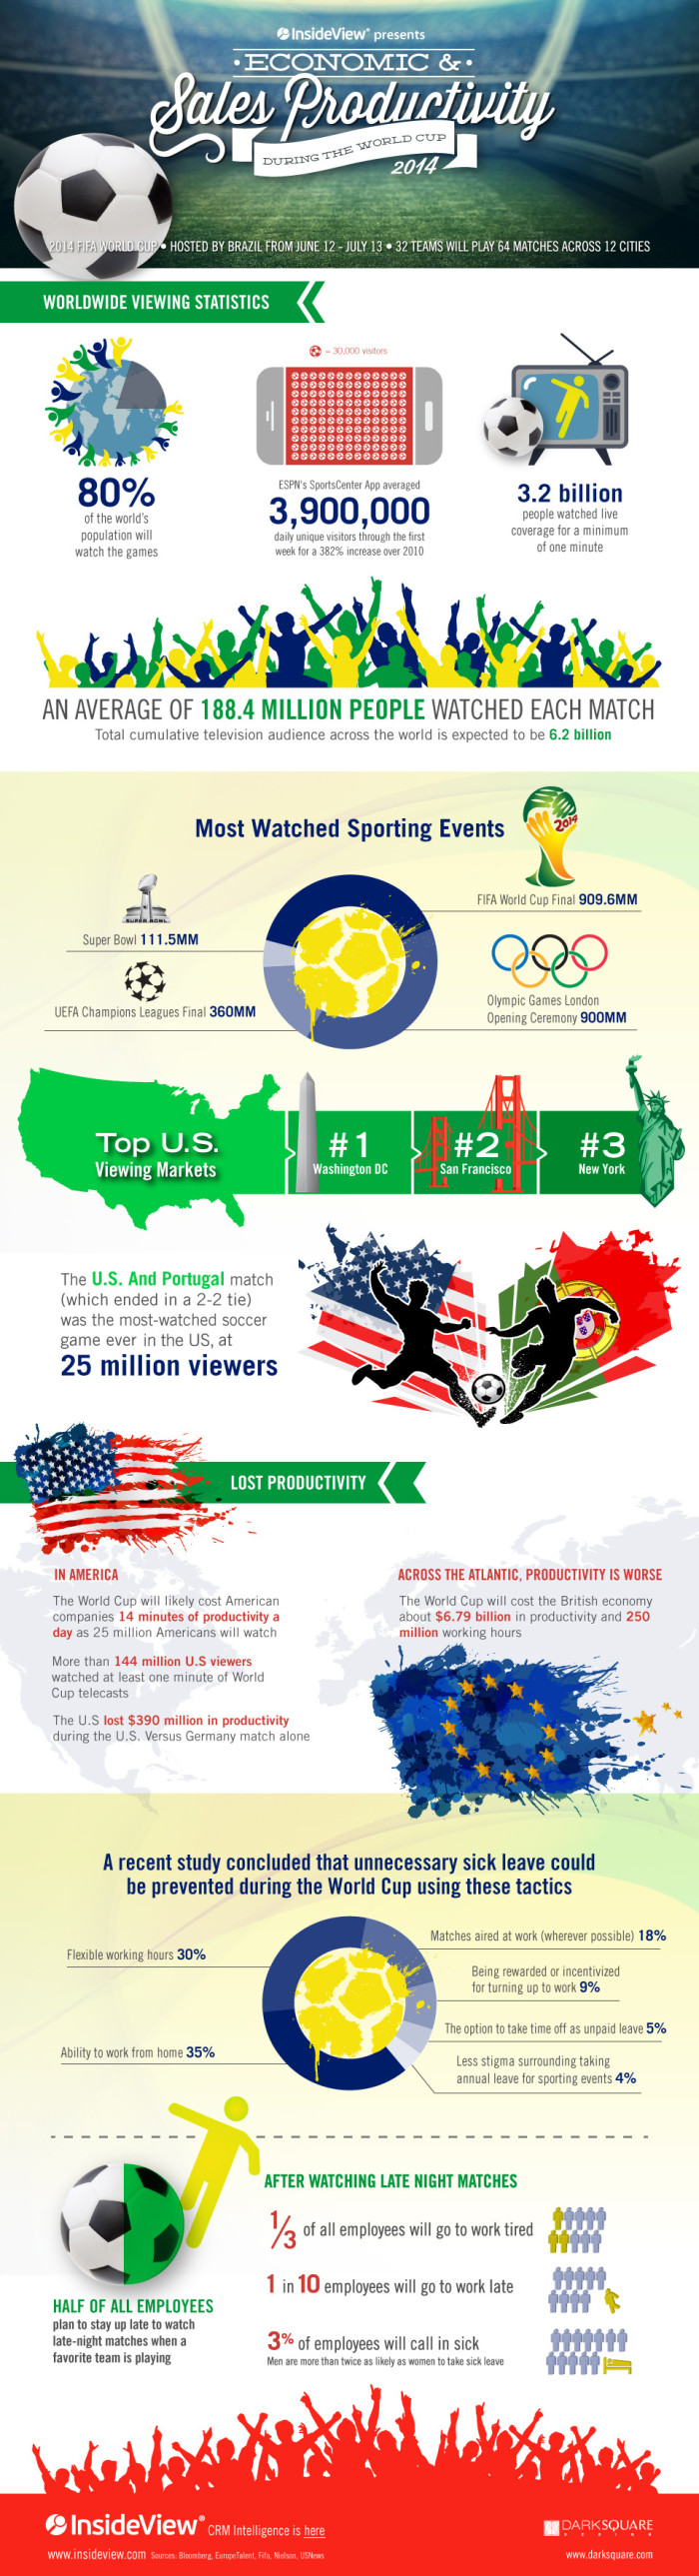 world cup productivity